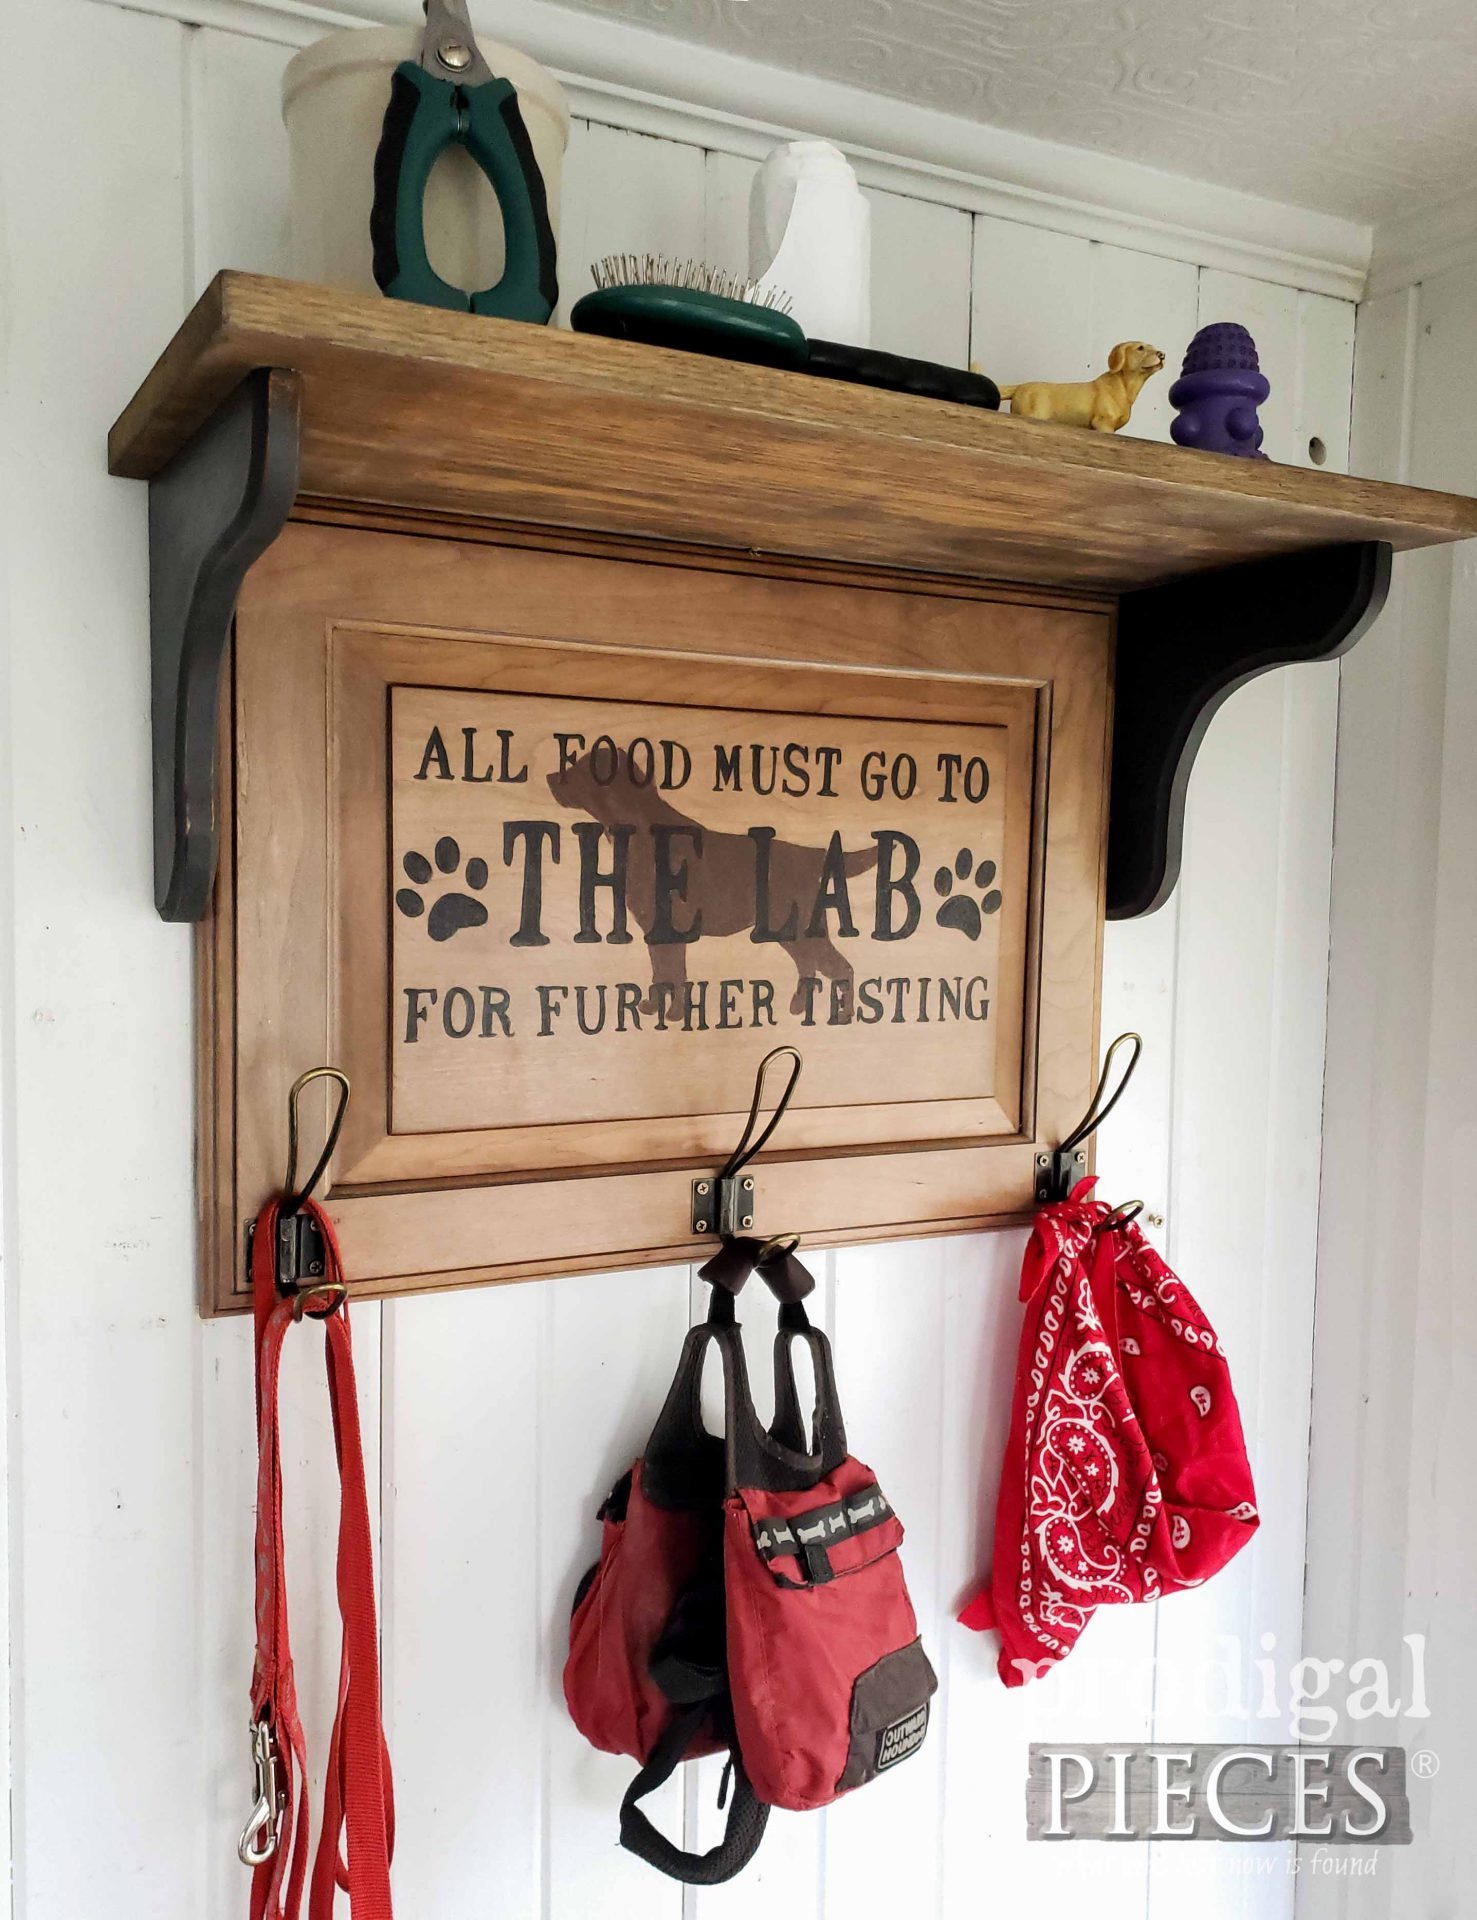 Rustic Farmhouse Upcycled Pet Organizer Created by Larissa of Prodigal Pieces | prodigalpieces.com #prodigalpieces #pets #home #organization #farmhouse